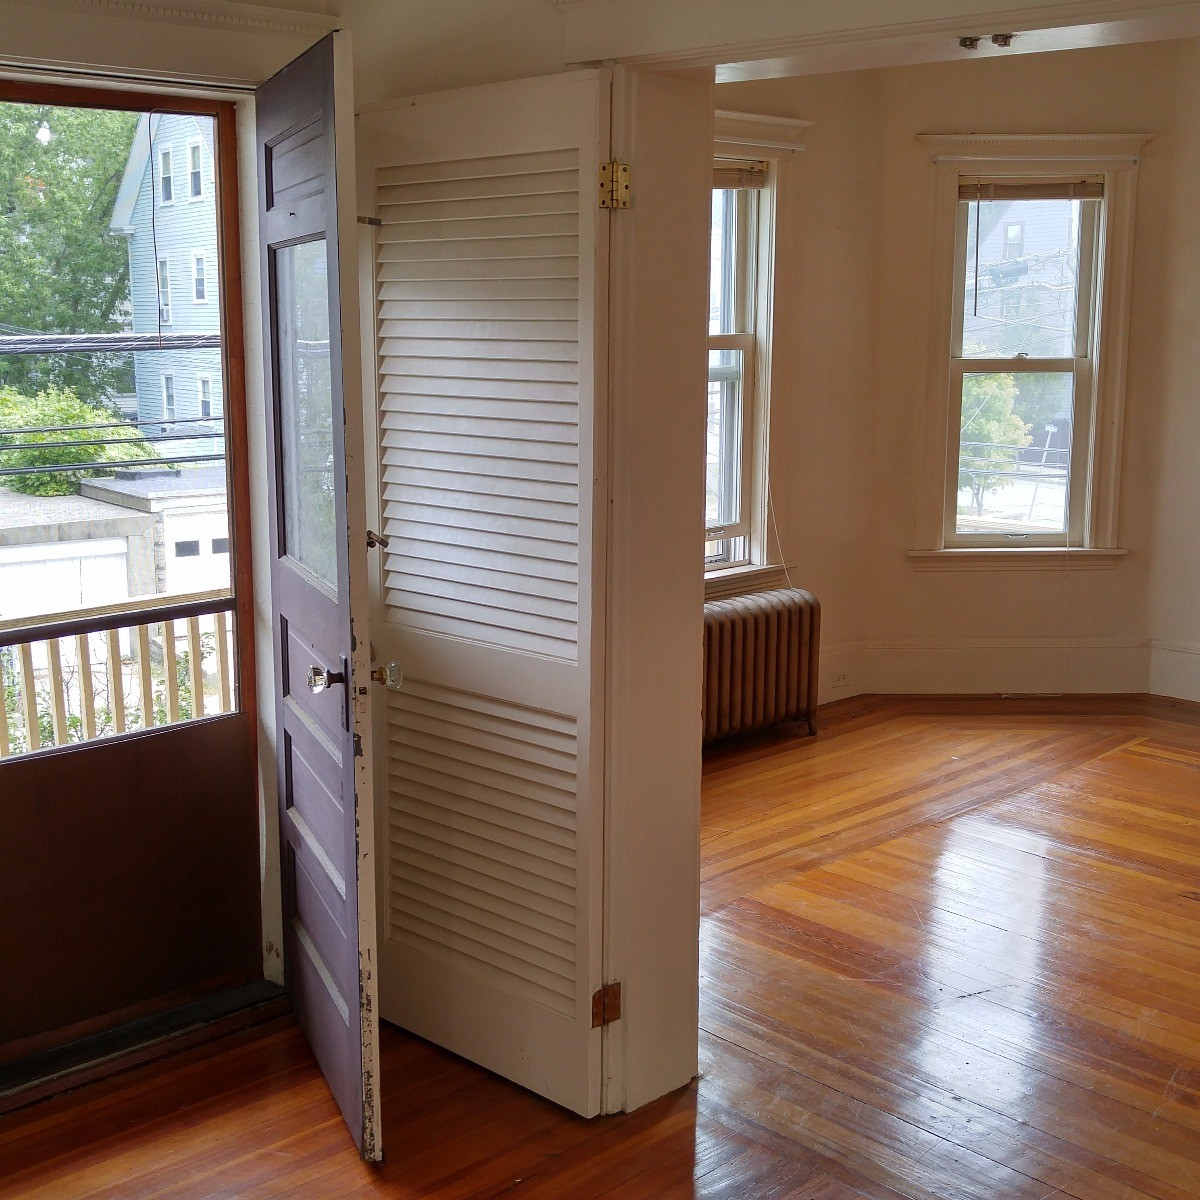 Pearson Rd Medford Ma 02144 1 Bedroom Apartment For